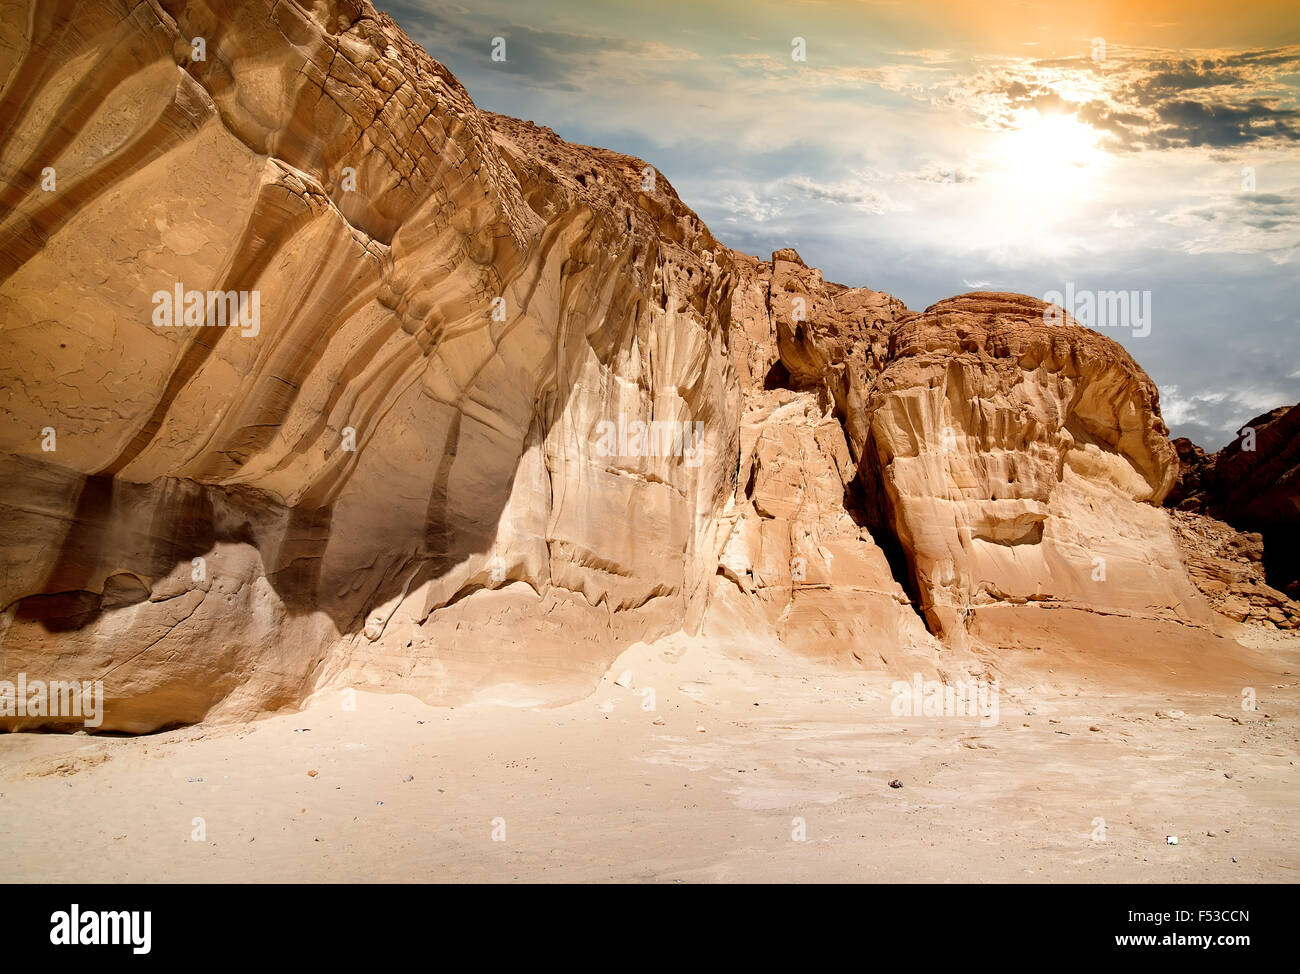 Mountains of canyon in Sinai at sunrise - Stock Image